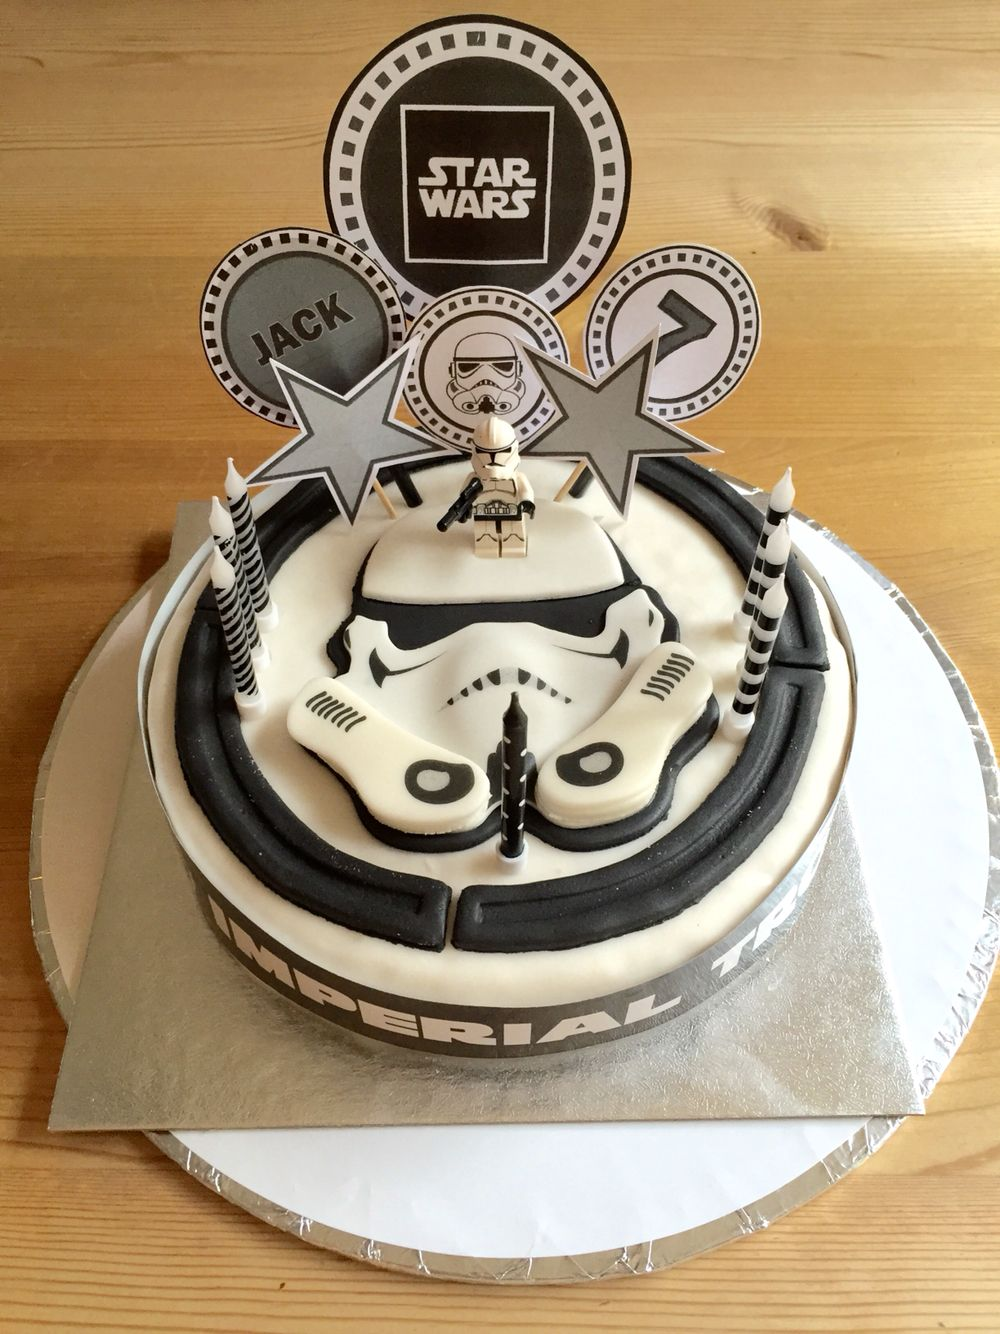 Cake With Photo Tesco : Star Wars cake. From Tesco for ?10. Customised by making ...